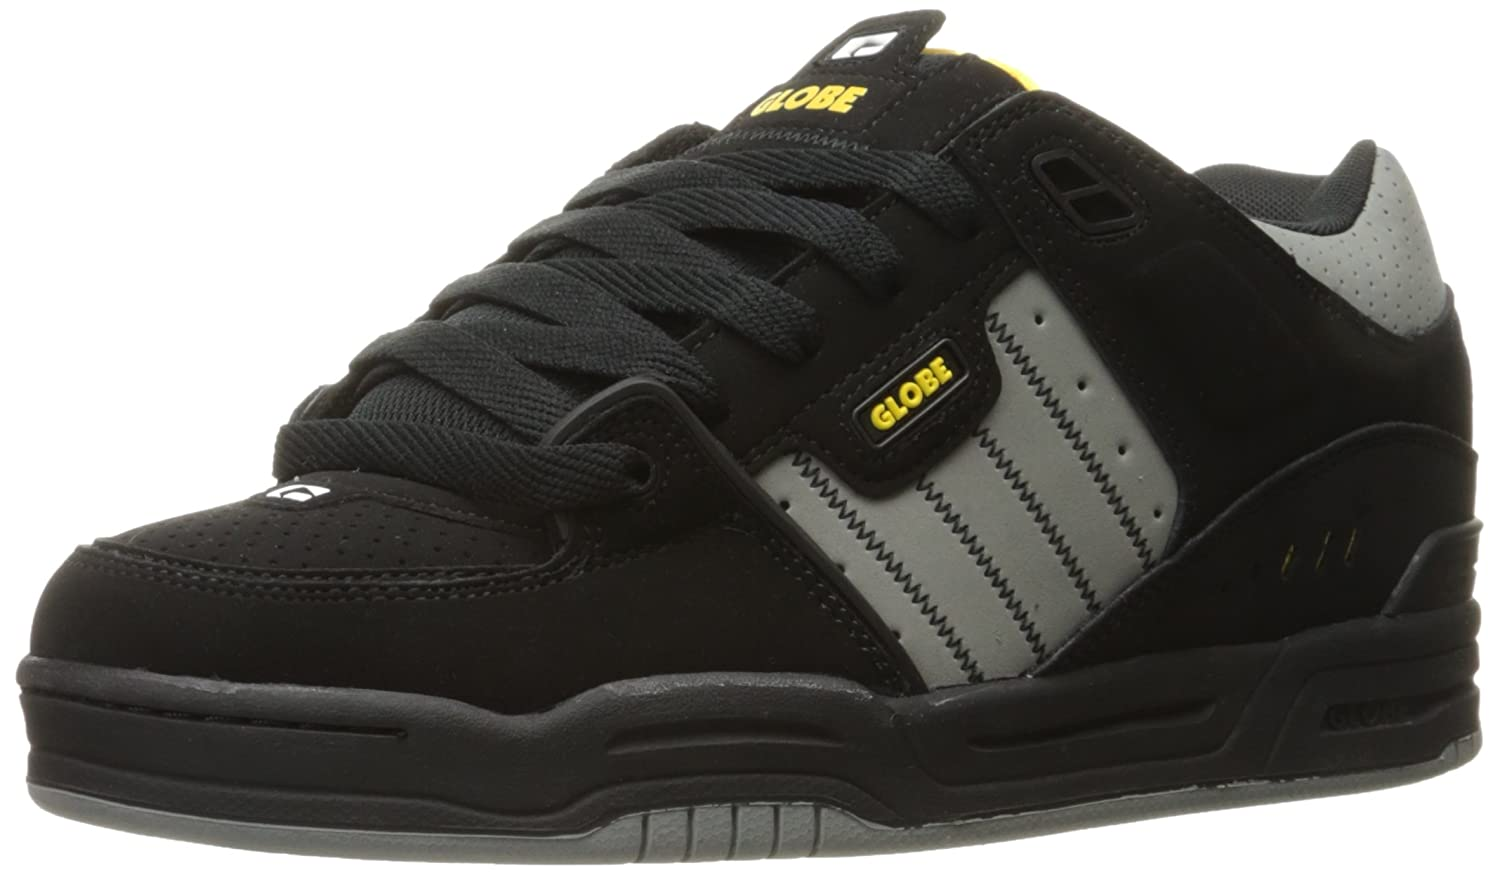 Globe Mens Fusion Skate Shoes 11.5 D(M) US|Black/Grey/Yellow